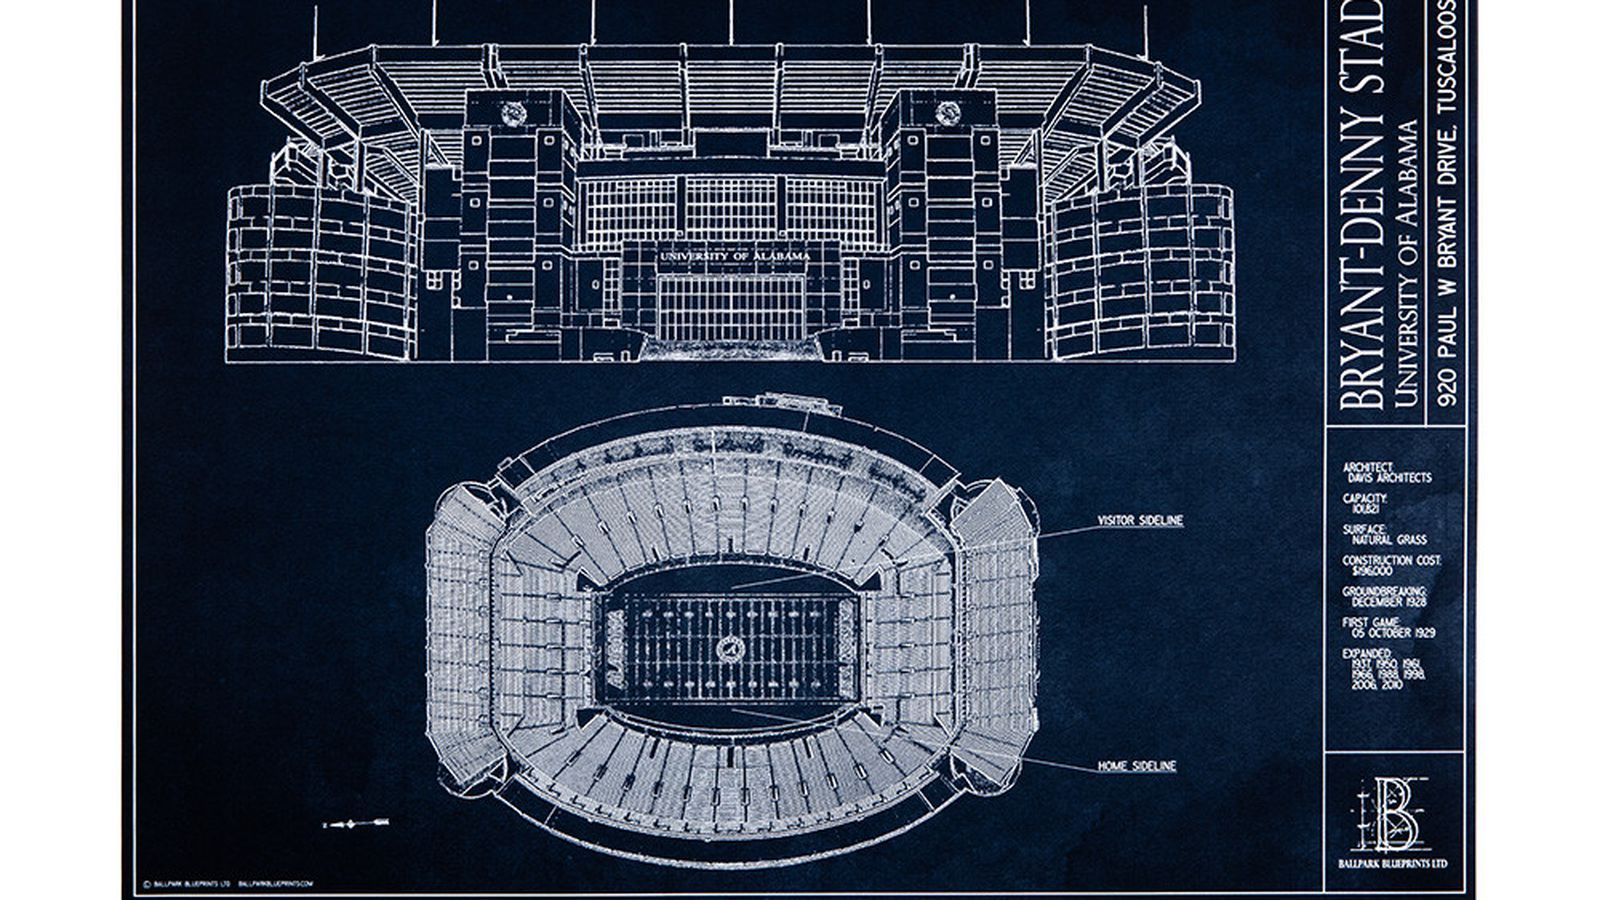 Beautiful bryant denny architectural blueprints now available and beautiful bryant denny architectural blueprints now available and you can win one roll bama roll malvernweather Gallery